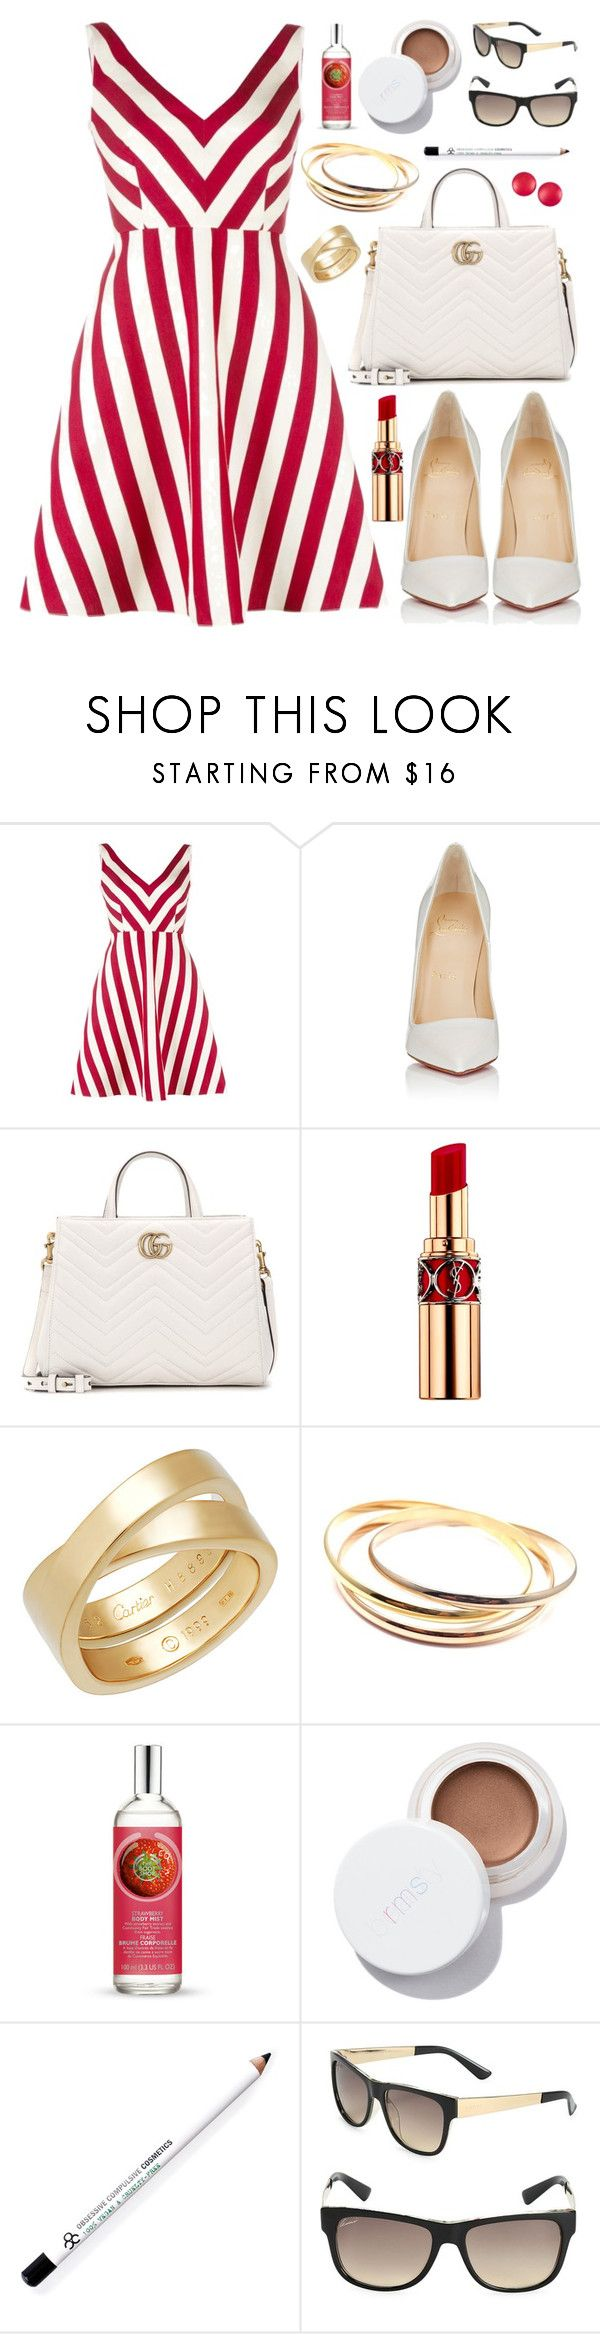 """""""#1509"""" by ar0und-the-w0rld ❤ liked on Polyvore featuring RED Valentino, Christian Louboutin, Gucci, Yves Saint Laurent, Cartier, The Body Shop, Obsessive Compulsive Cosmetics and Charles Jourdan"""